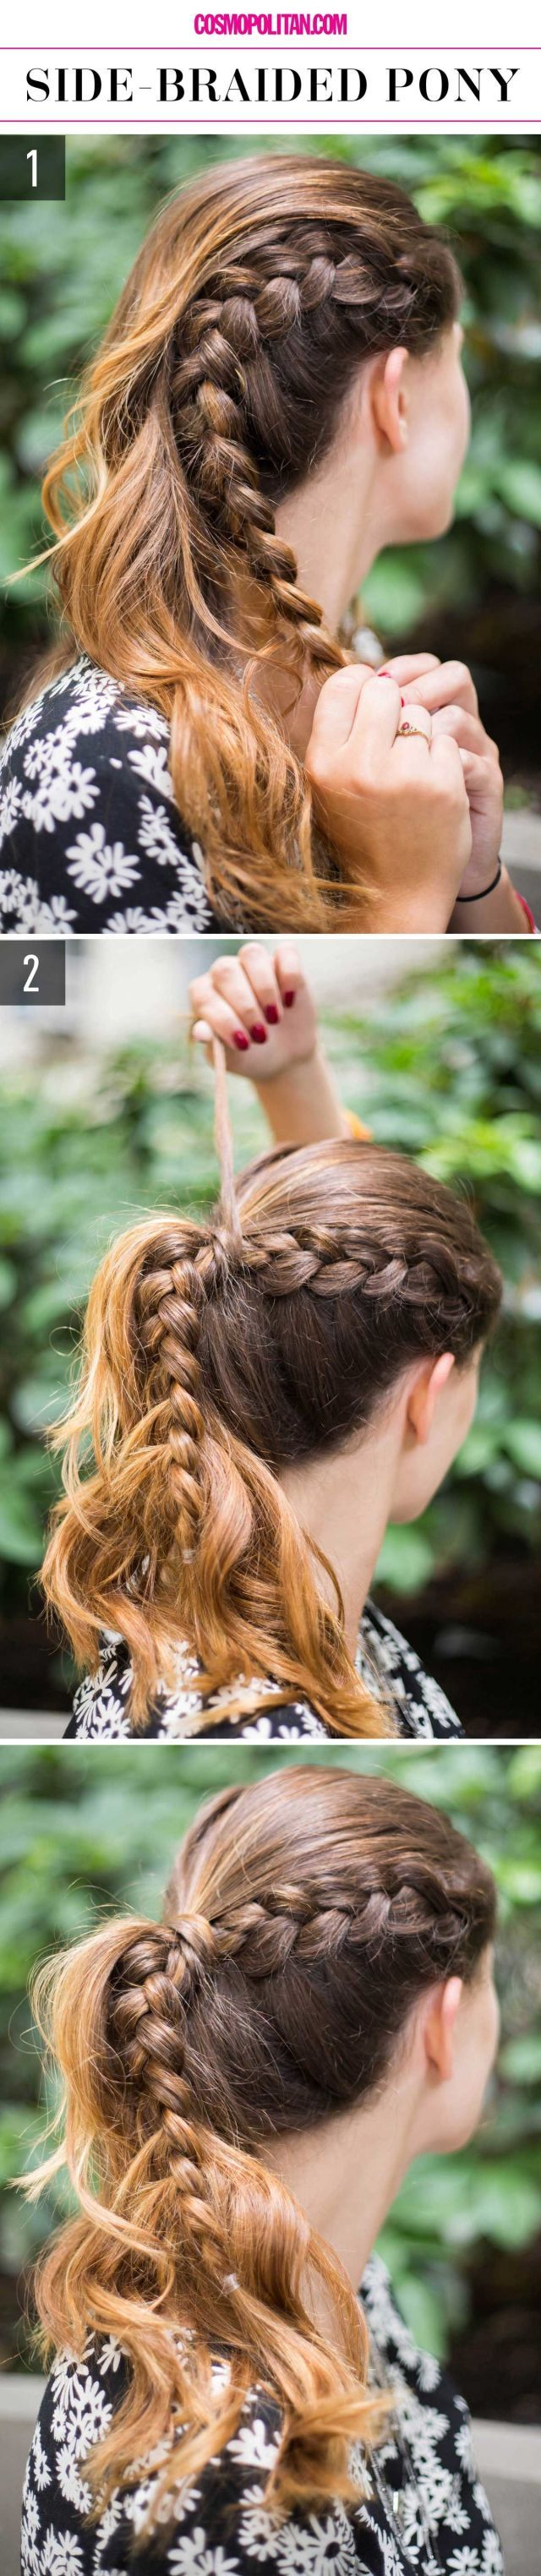 15 Super-Easy Hairstyles for Lazy Girls Who Can't Even - Cosmopolitan.com: